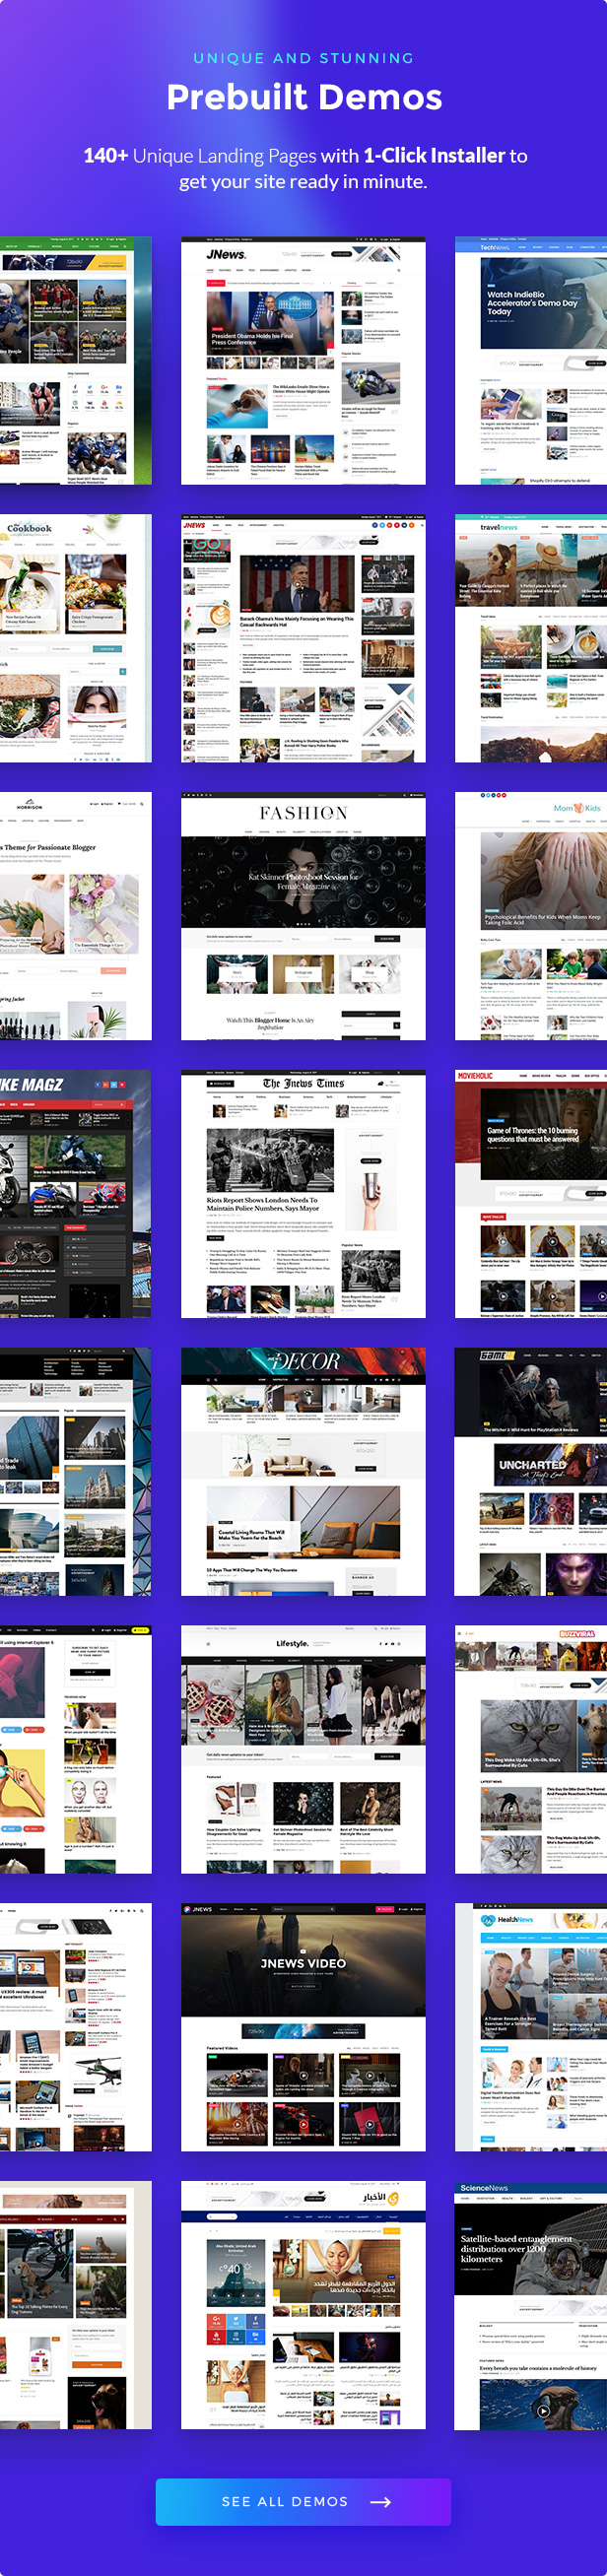 JNews - WordPress Newspaper Magazine Blog AMP Theme - 26